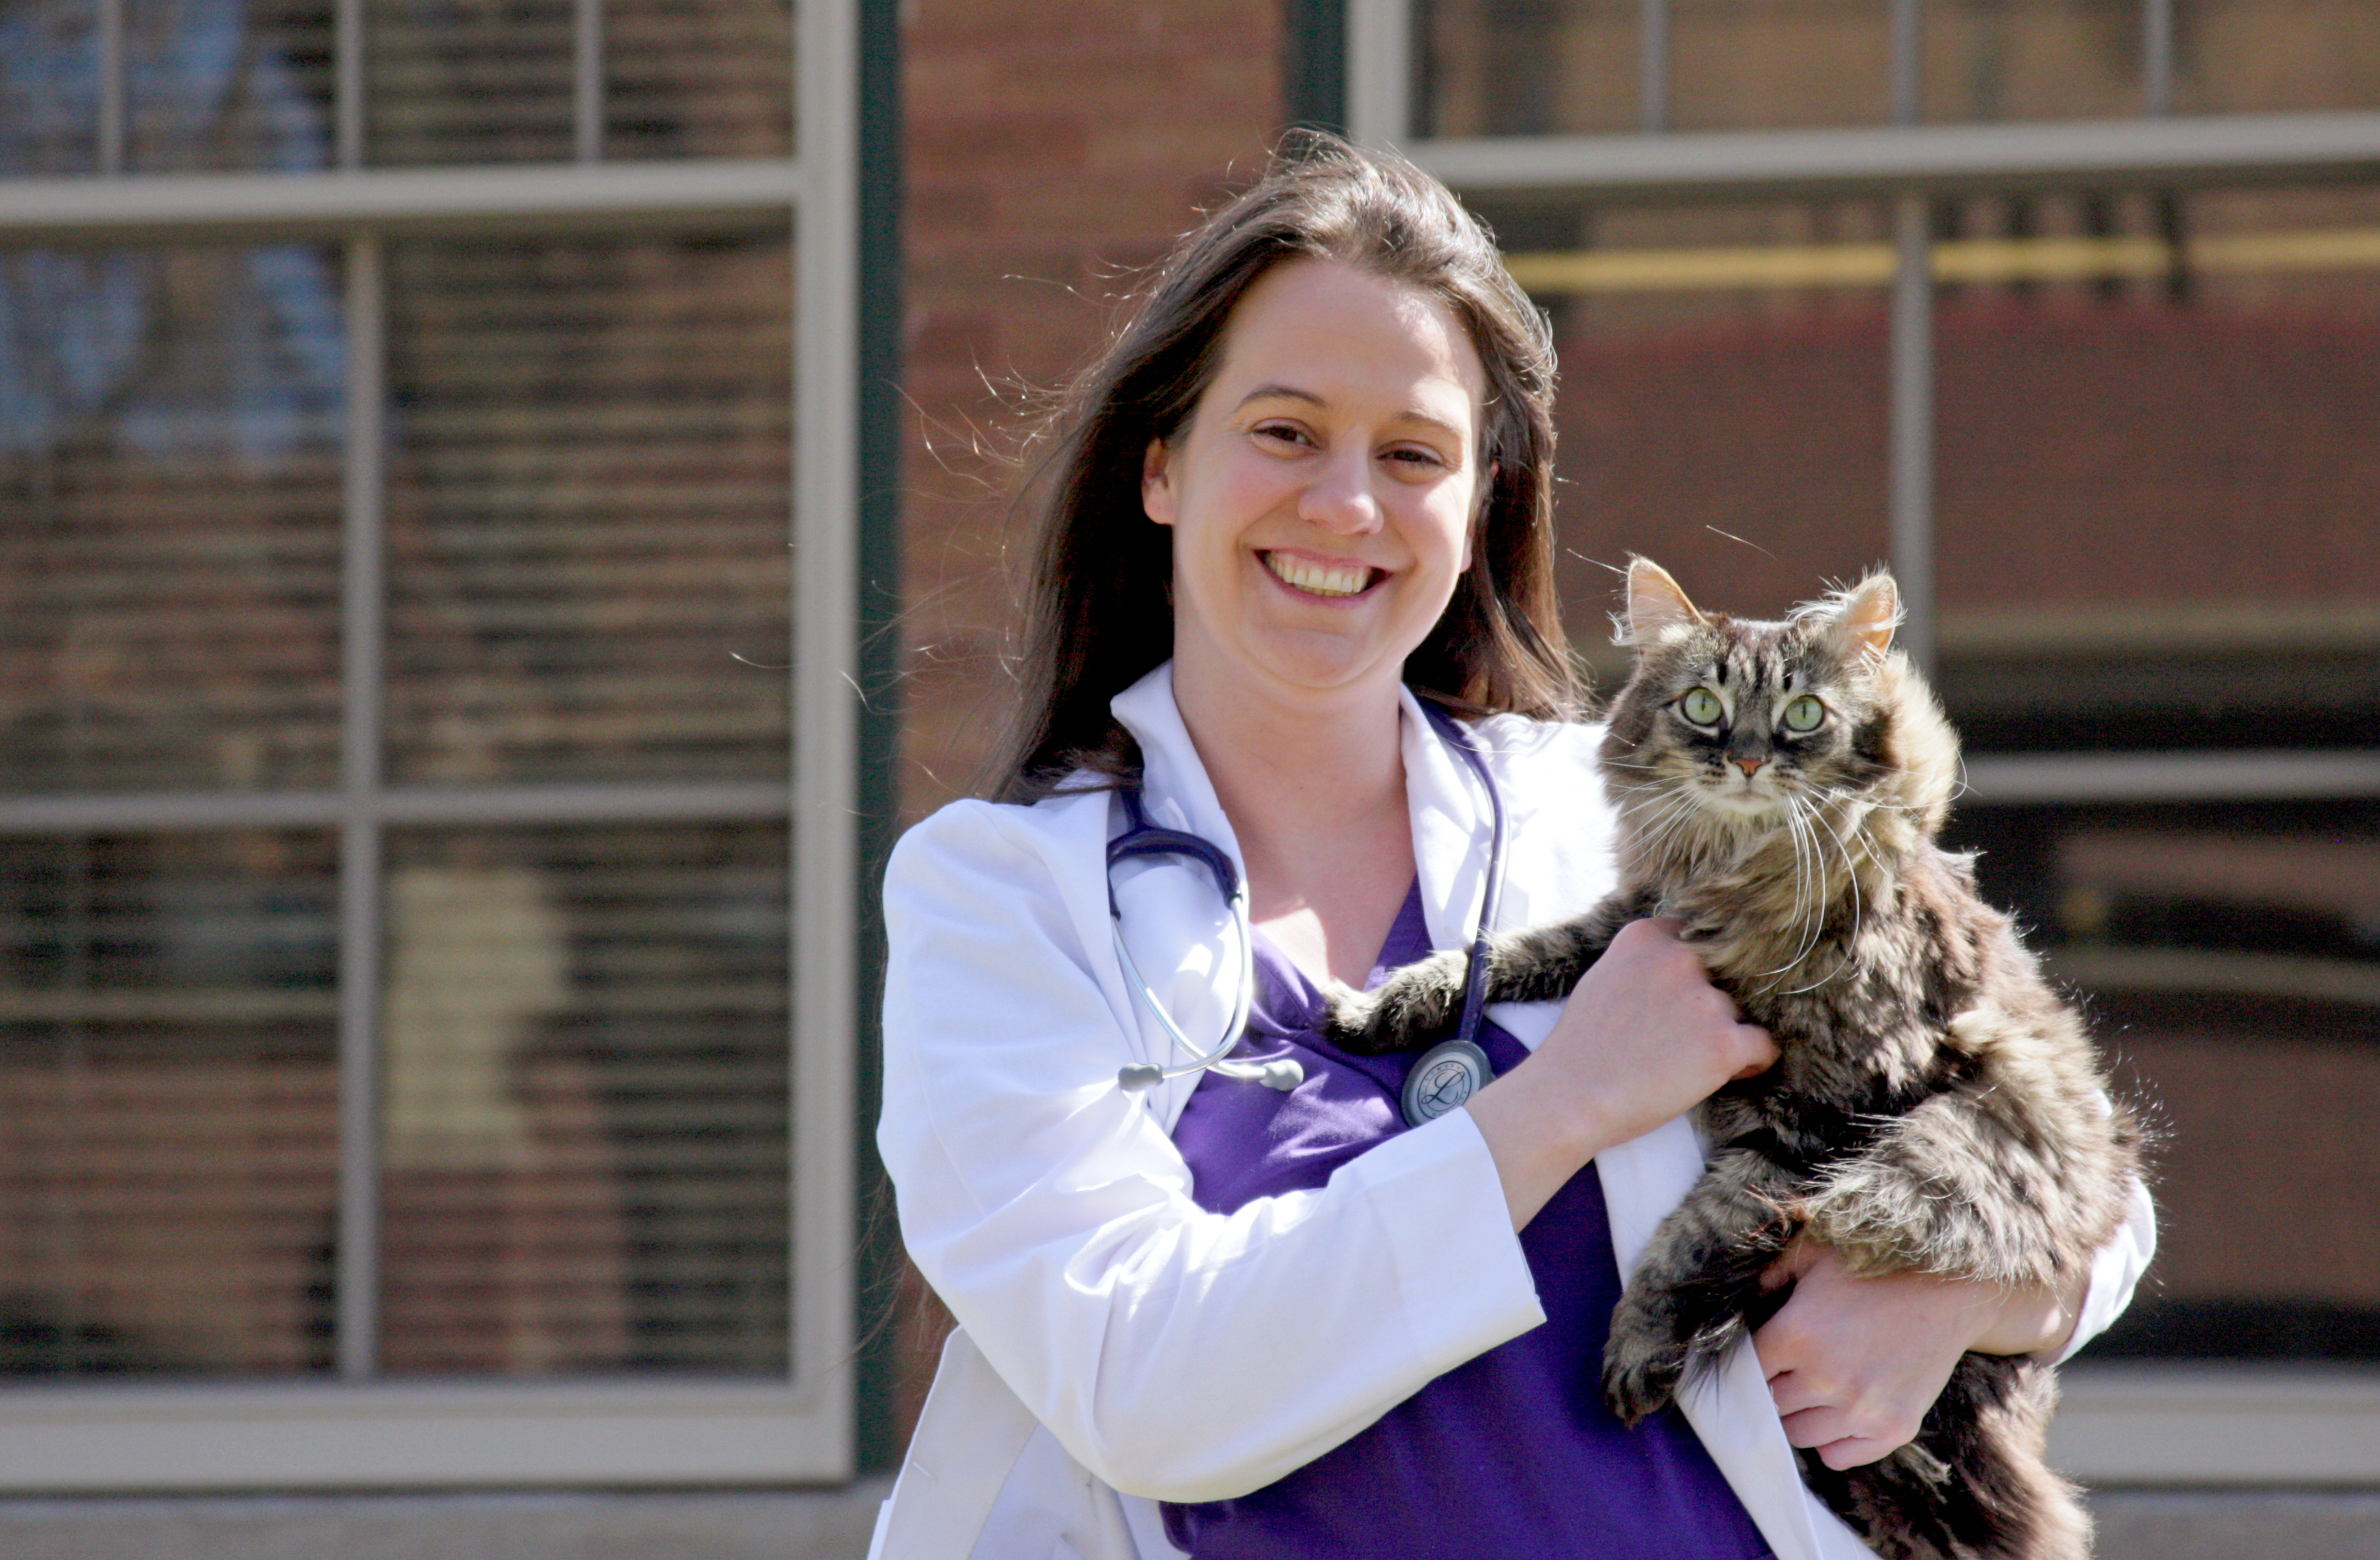 Kristin Snyder and her cat Peanut